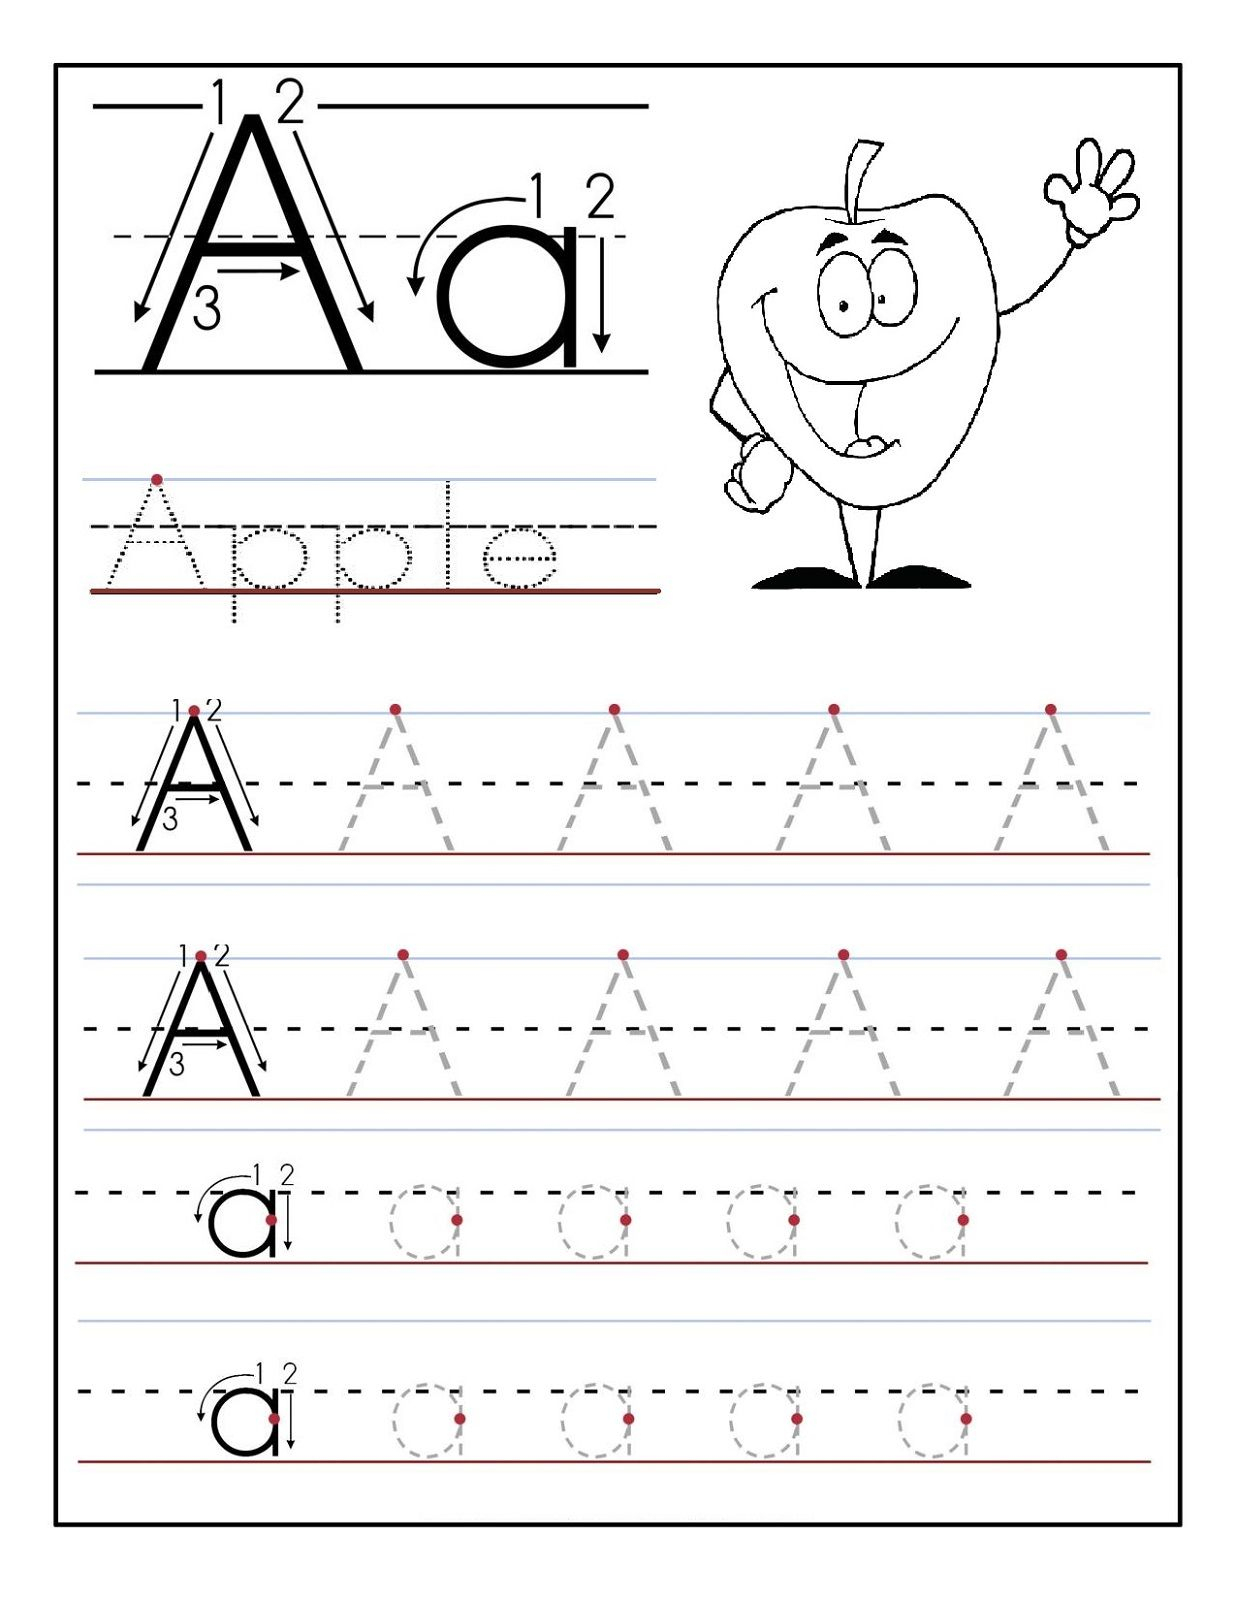 Trace The Letter A Worksheets | Artie | Preschool Worksheets, Letter | A For Apple Worksheet Printable